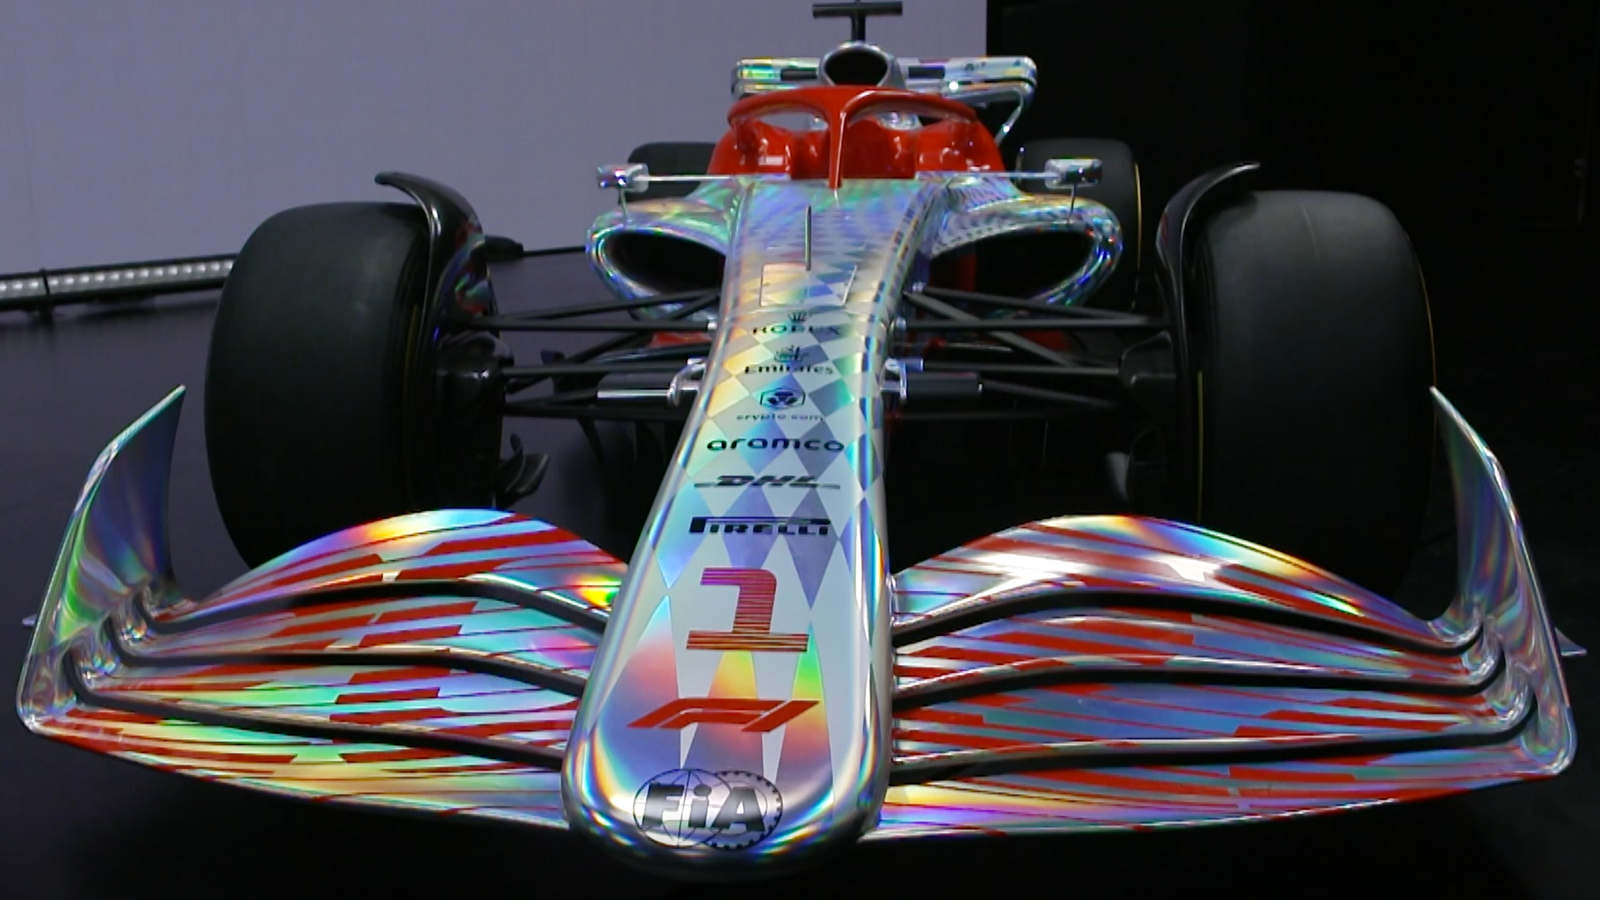 Formula 1 2022 car revealed: Watch as the new era of car design was officially unveiled at Silverstone